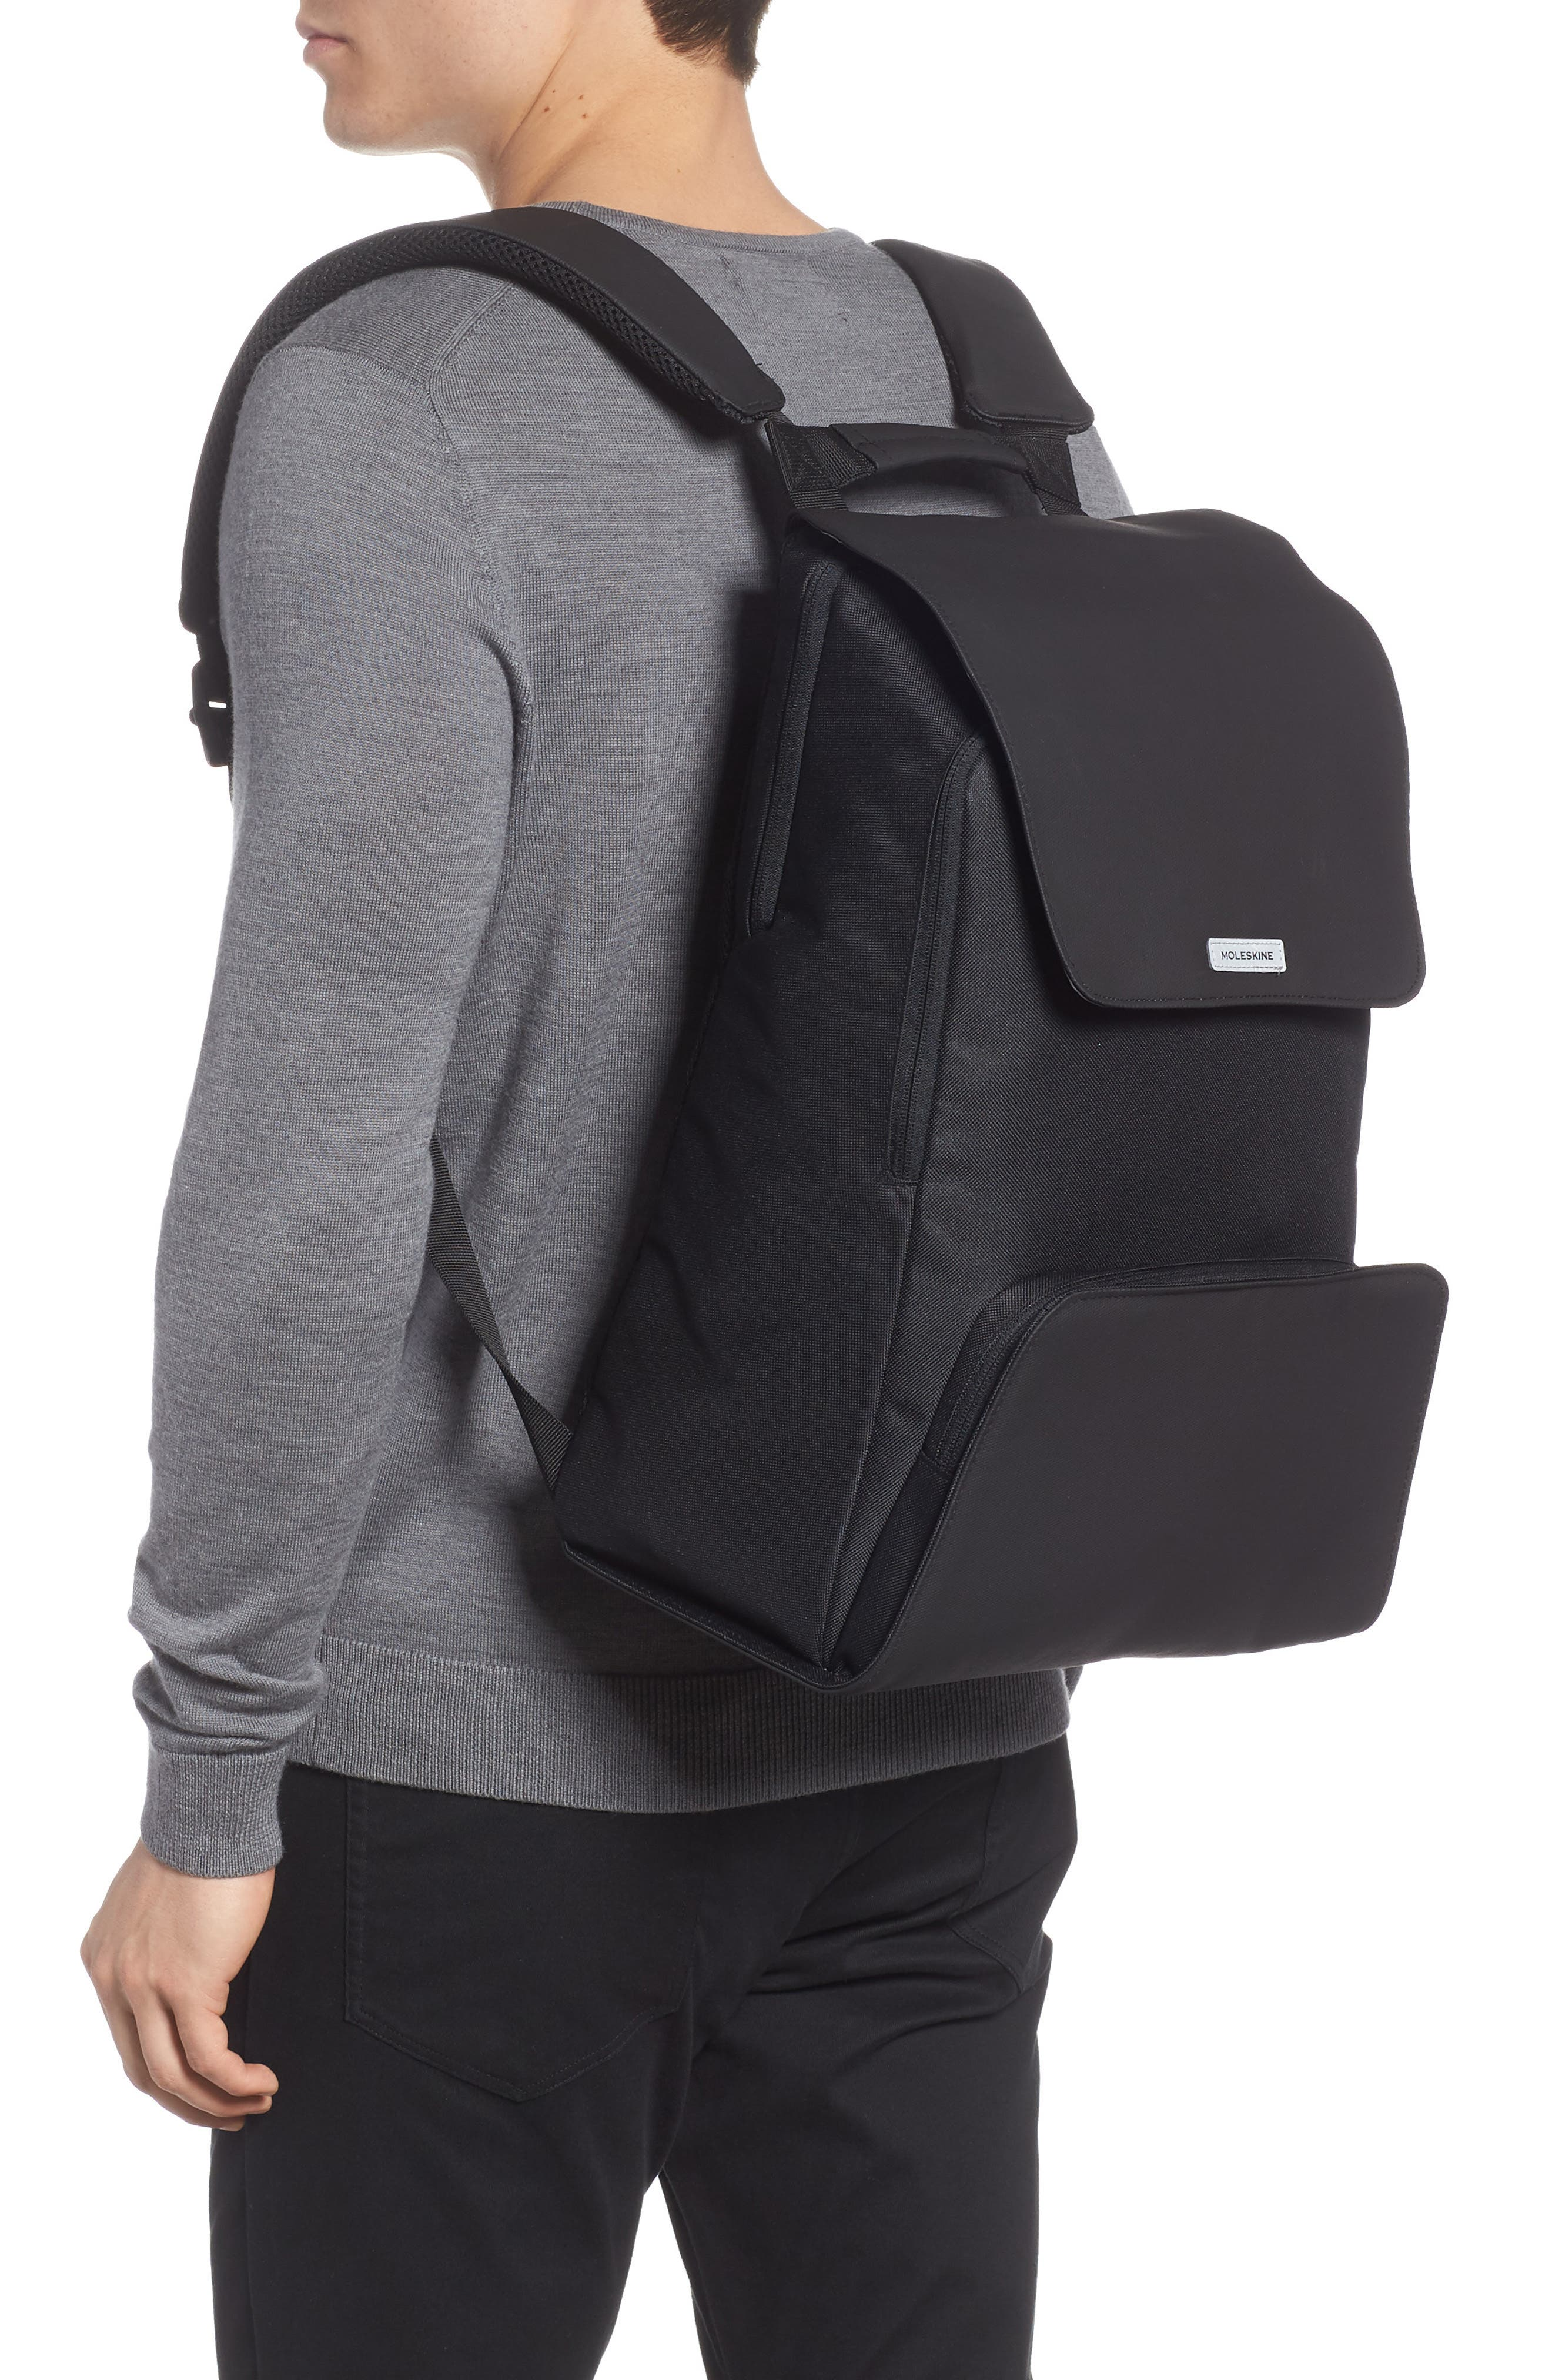 Nomad Water Resistant Backpack,                             Alternate thumbnail 2, color,                             001